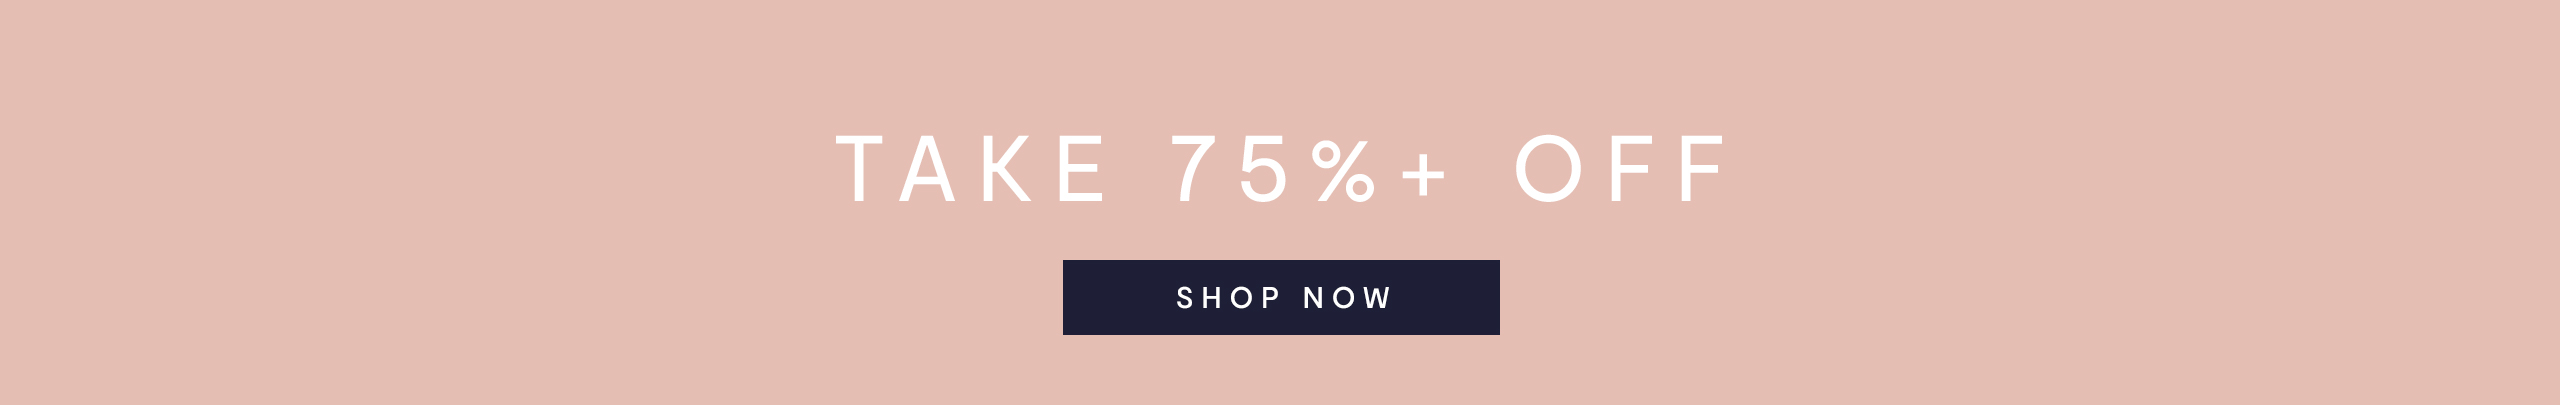 Take 75%+ Off: Shop Now